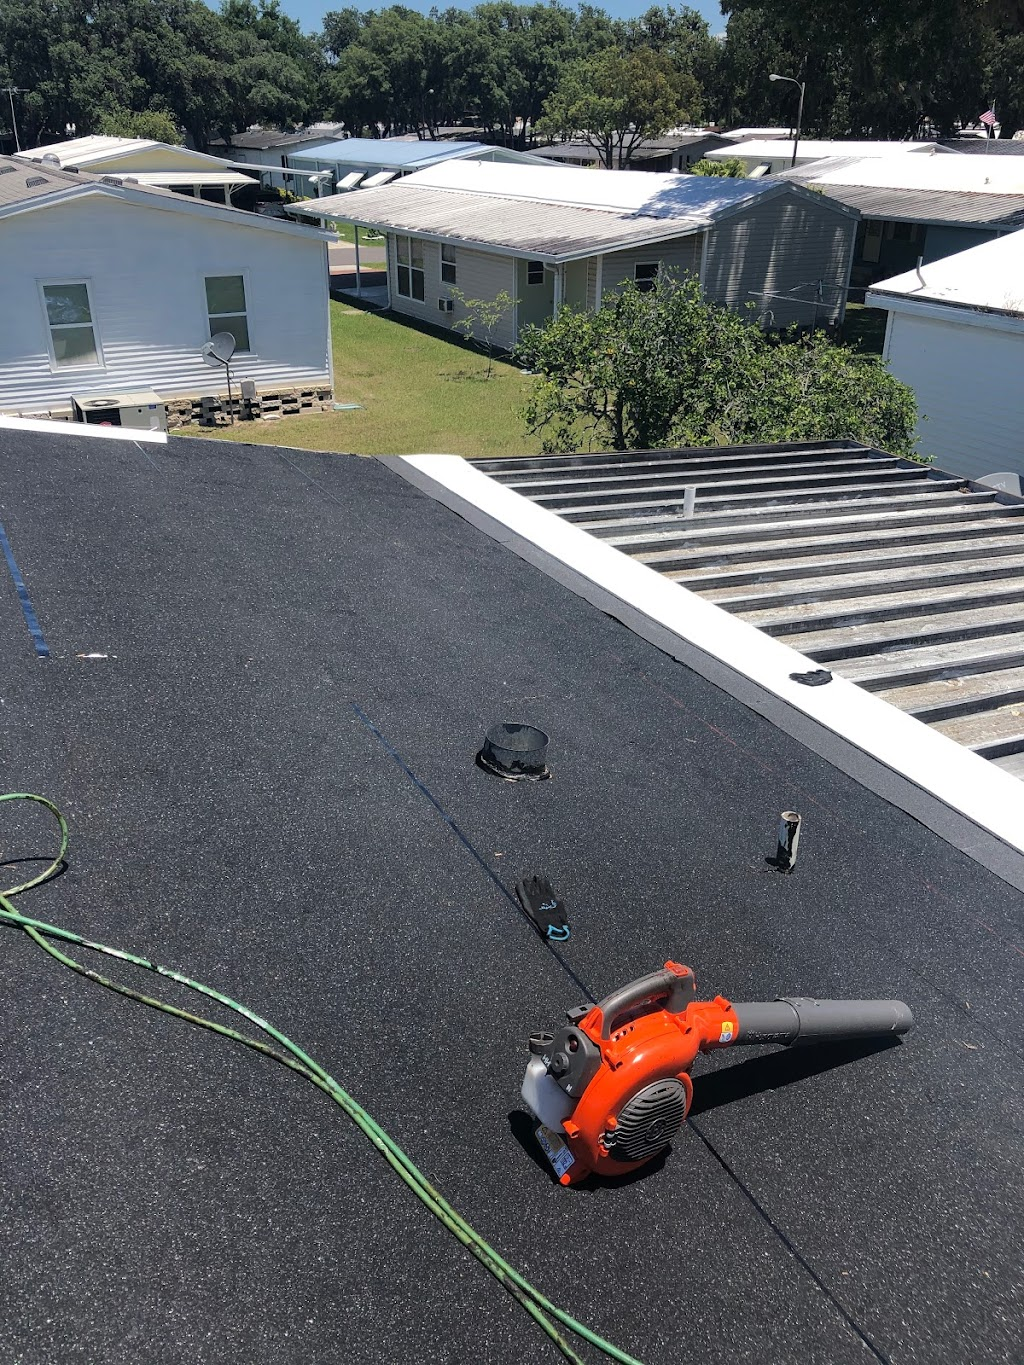 Desert Dry Roofing Inc. - roofing contractor  | Photo 9 of 10 | Address: 18819 Litzau Ln, Land O Lakes, FL 34638, USA | Phone: (813) 918-1506